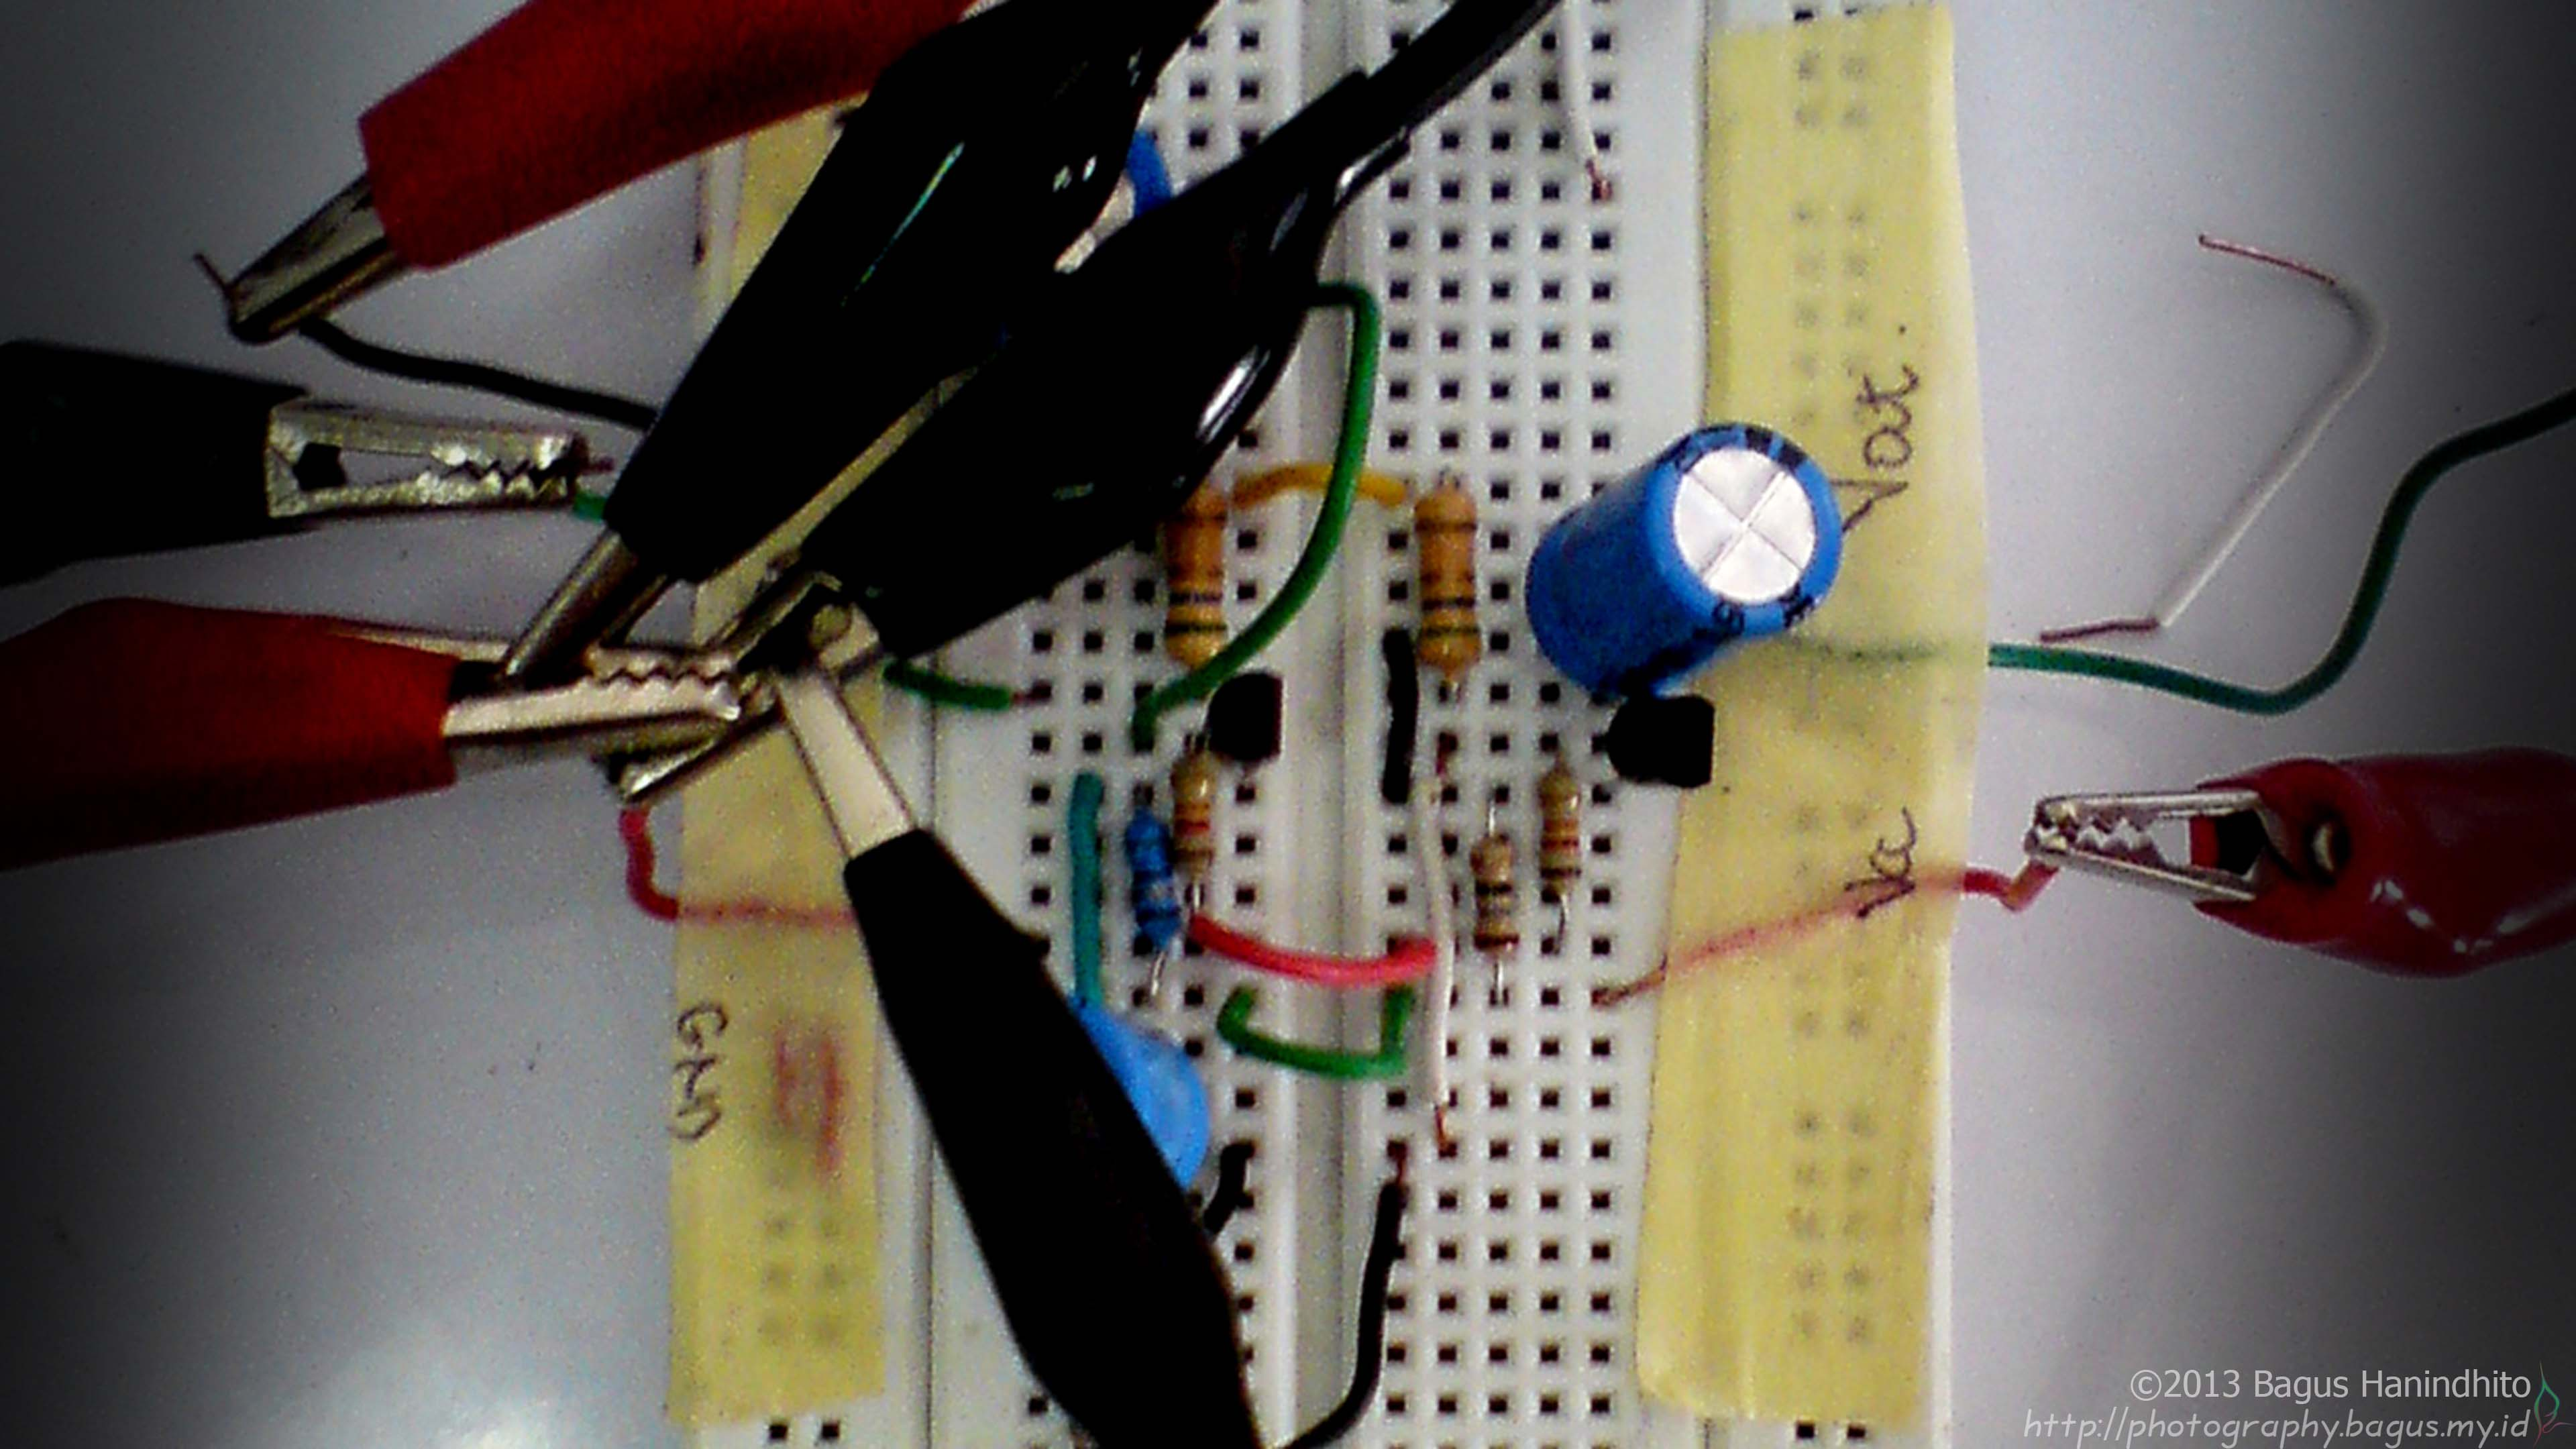 Amplifier Breadboard Implementation and Benchmark